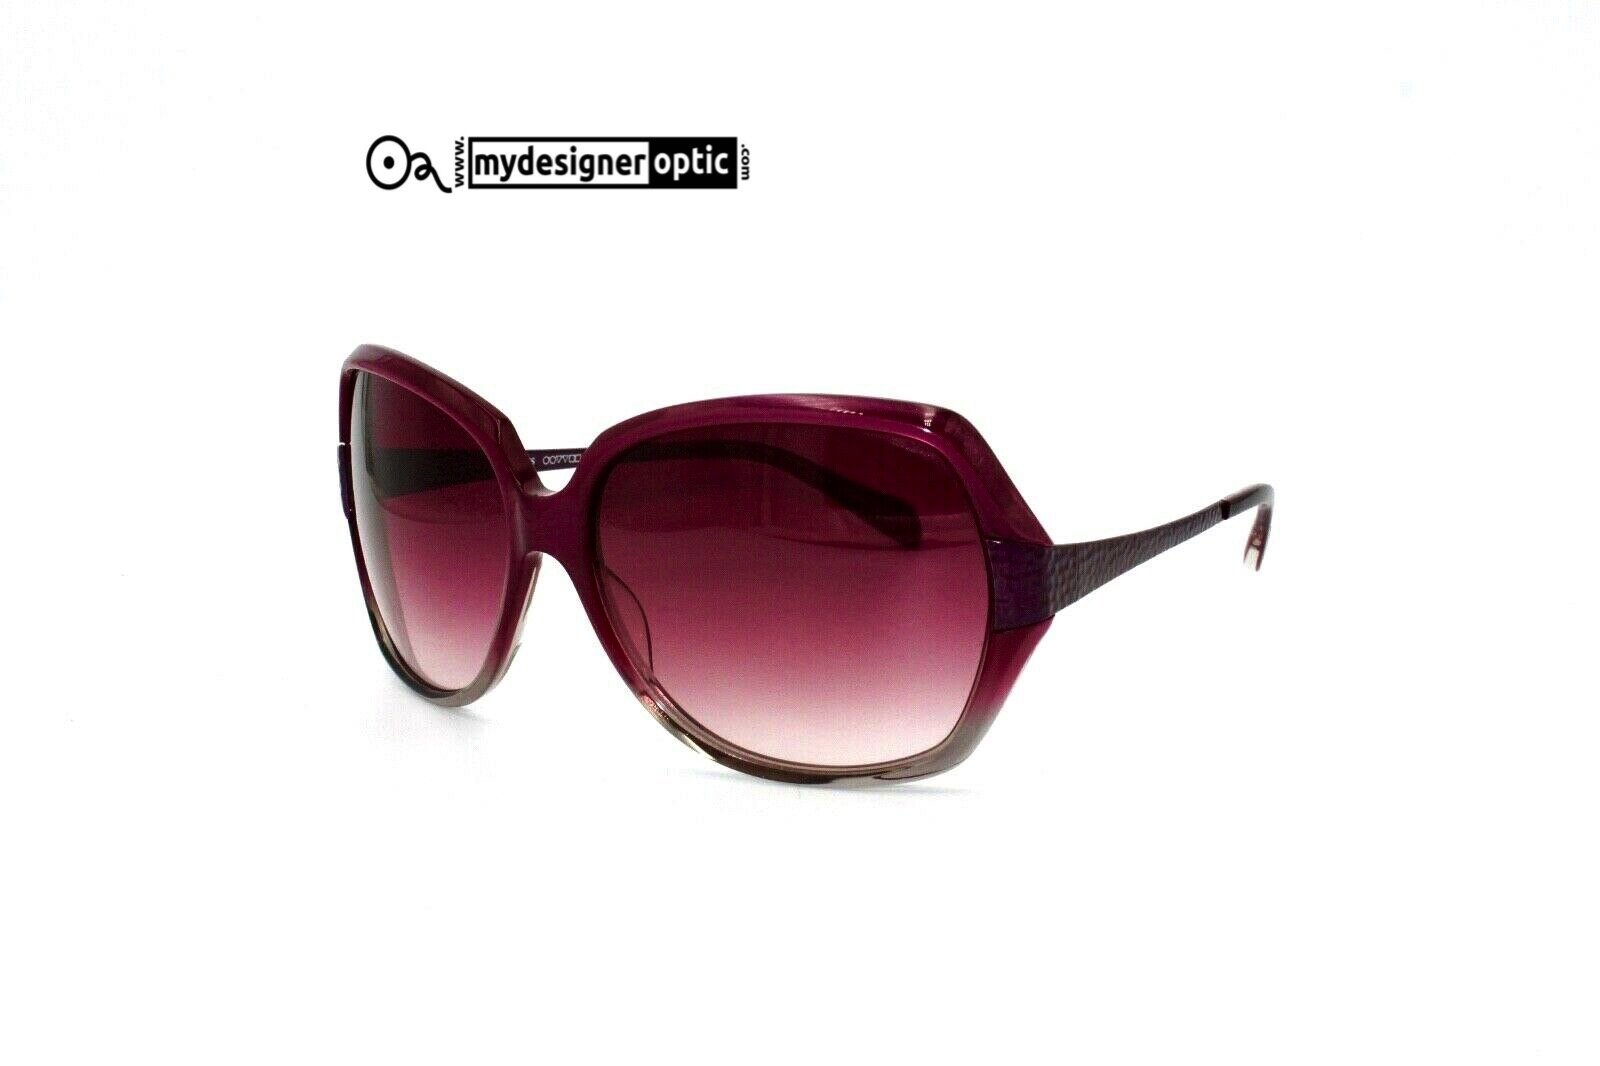 Oliver Peoples Sunglasses Guiselle 63-16-129 AMEGR Made in Japan - Mydesigneroptic